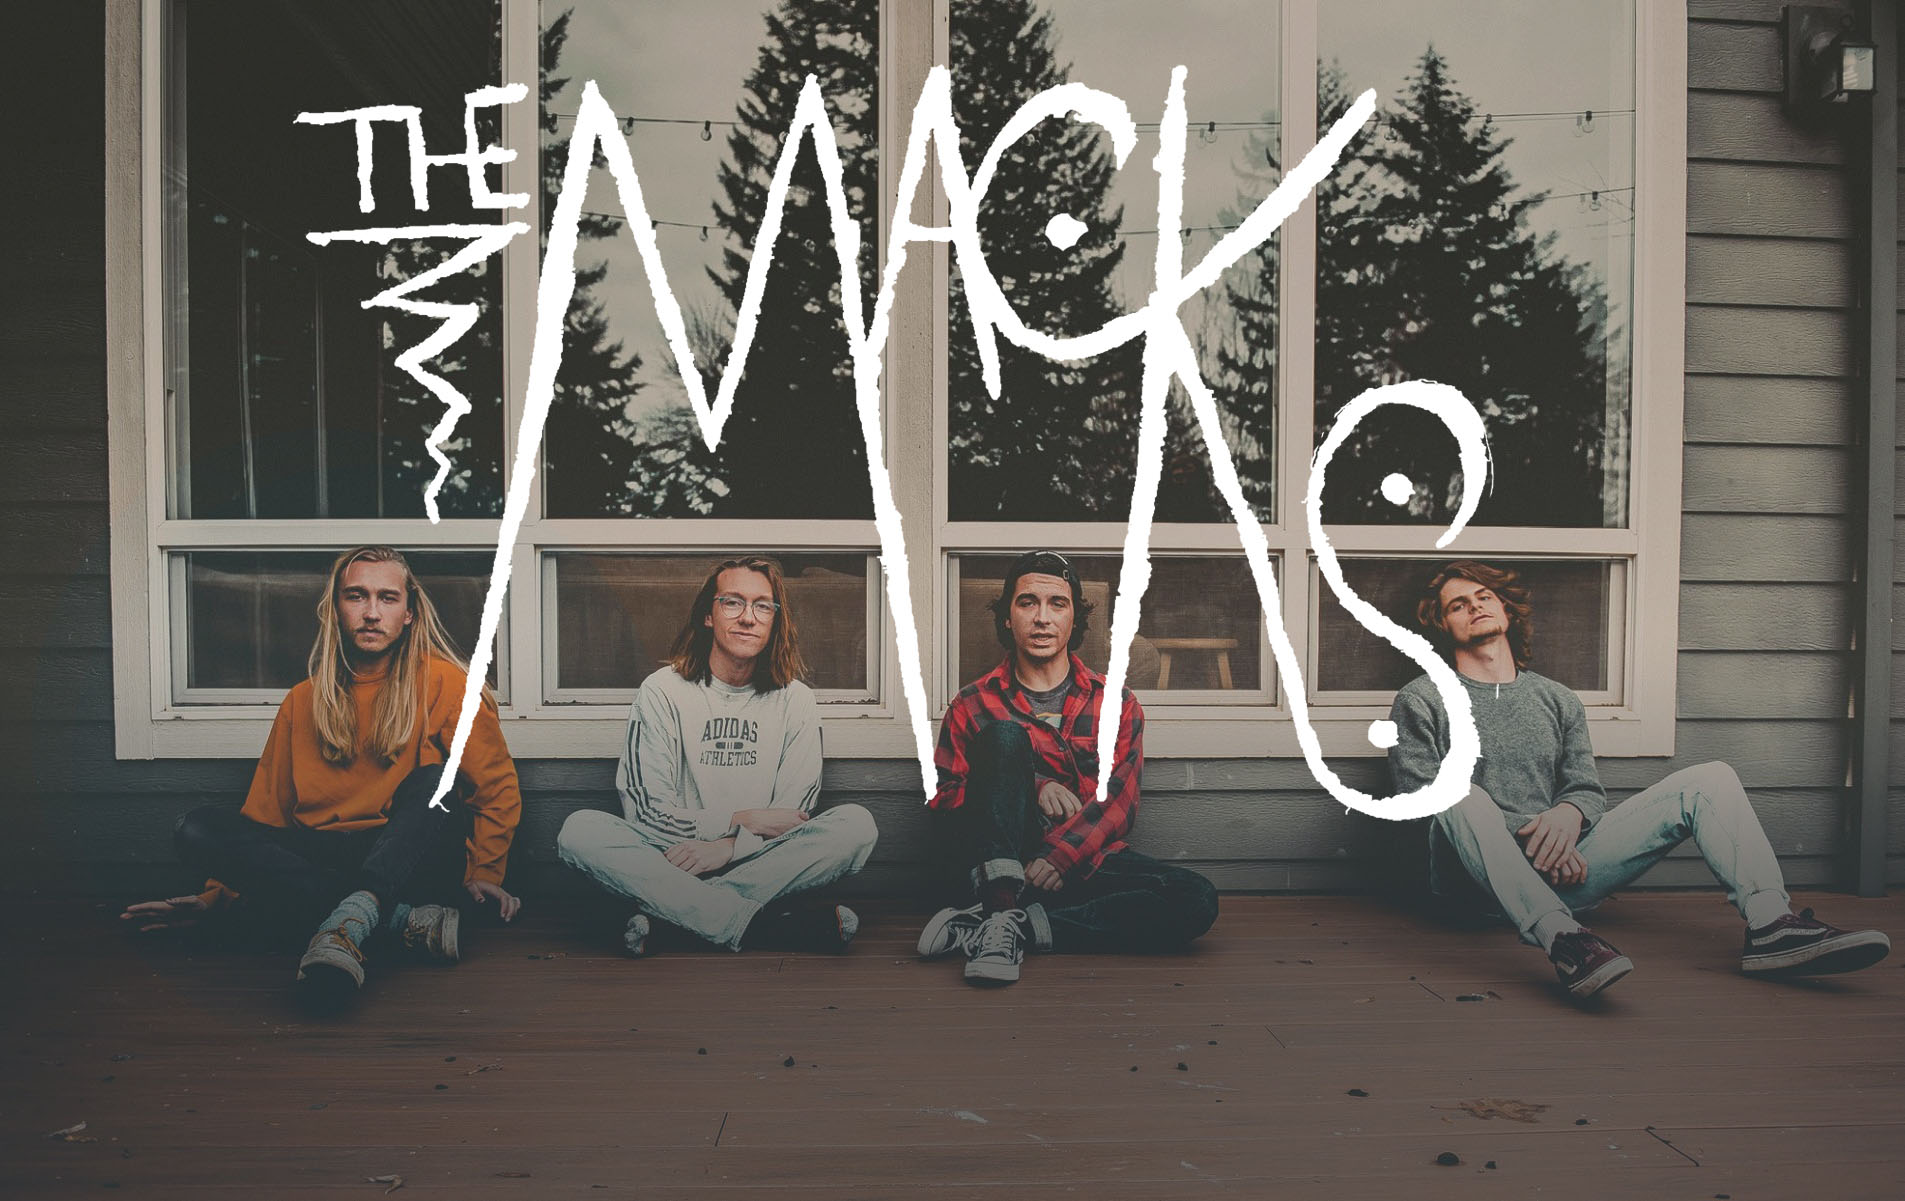 The Macks by photographer Ian Enger